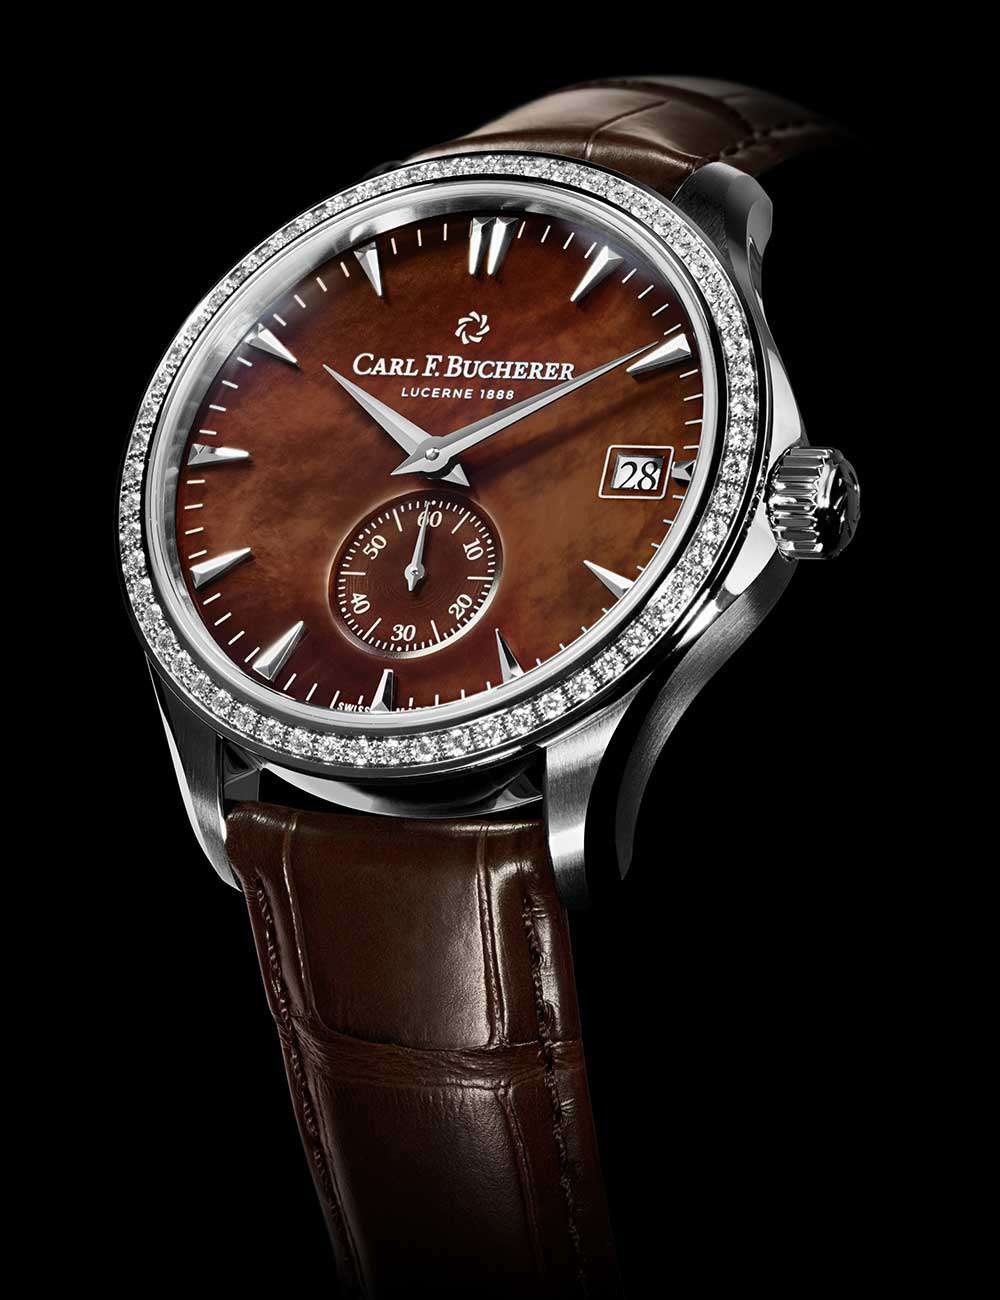 Carl F. Bucherer Manero Peripheral, diamond-set version